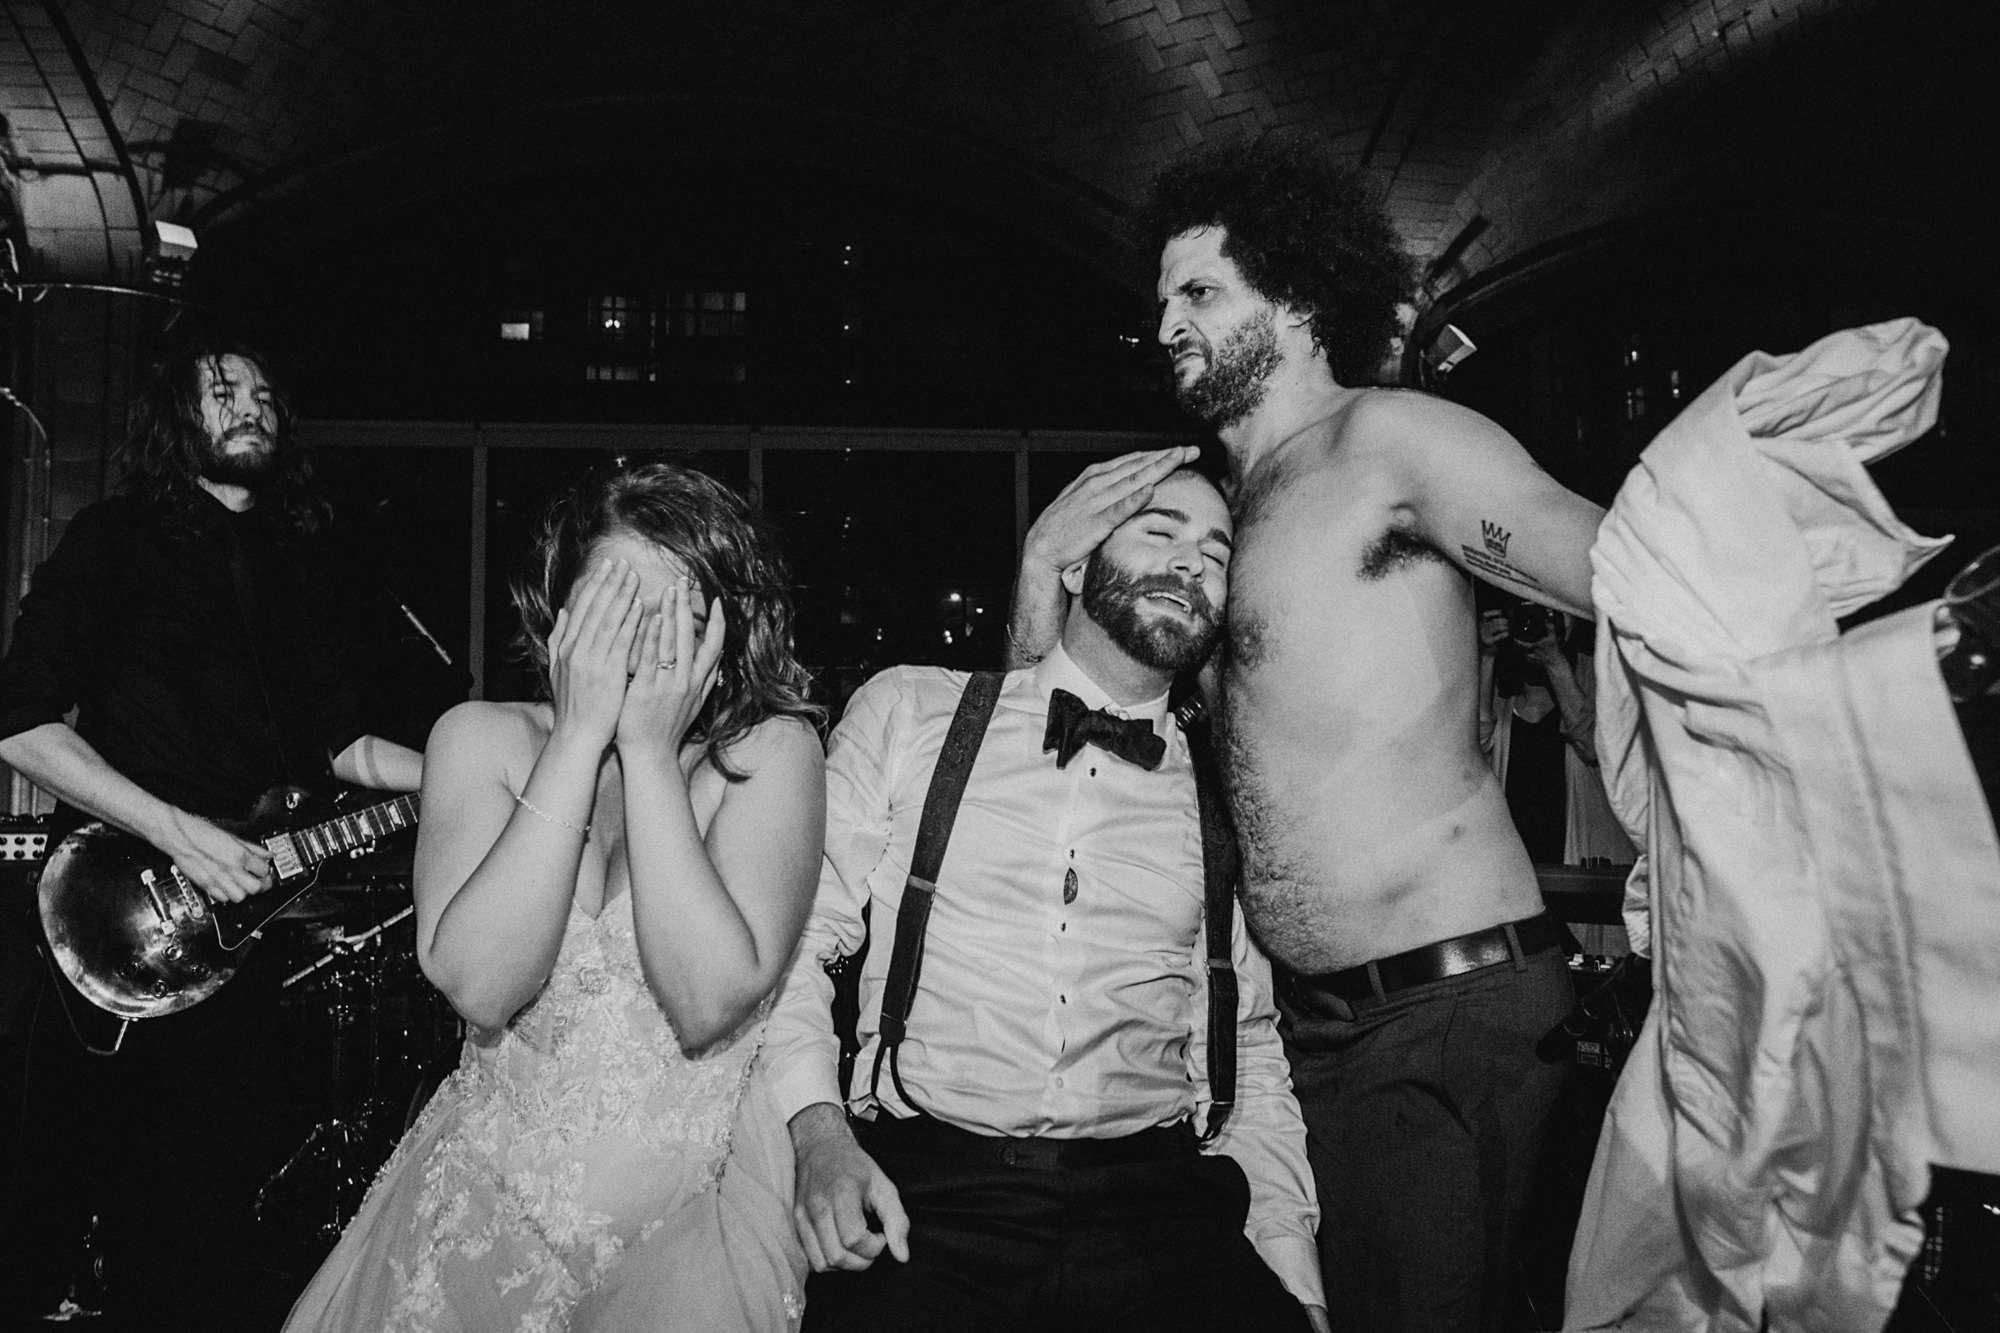 Topless guest presses his head to grooms chest - photo by Dan O'Day